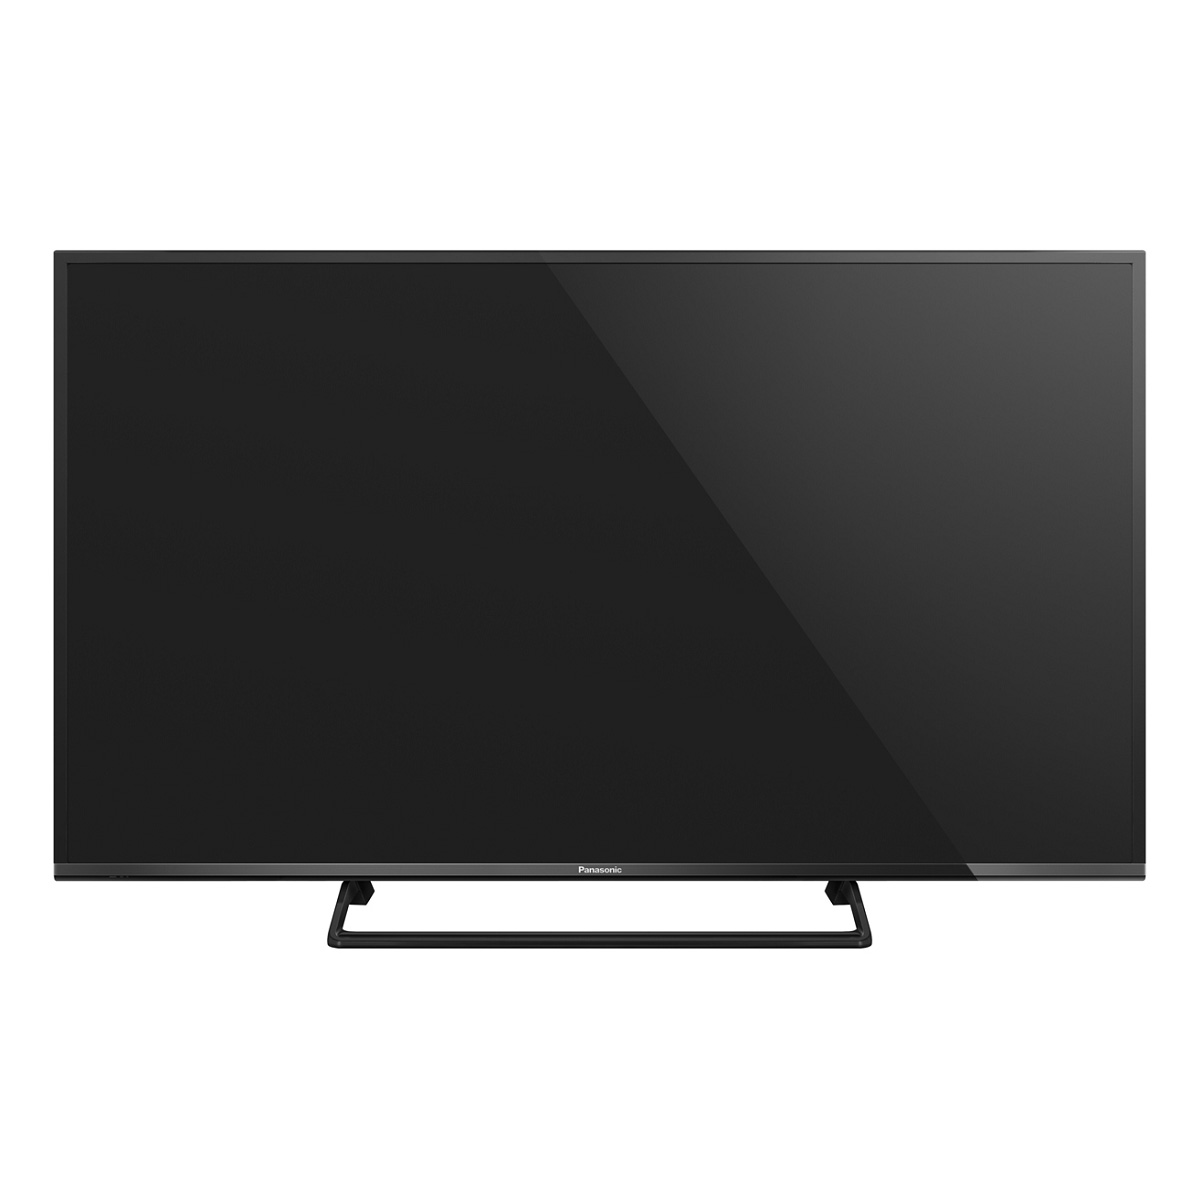 Panasonic TV TH-50DS610U